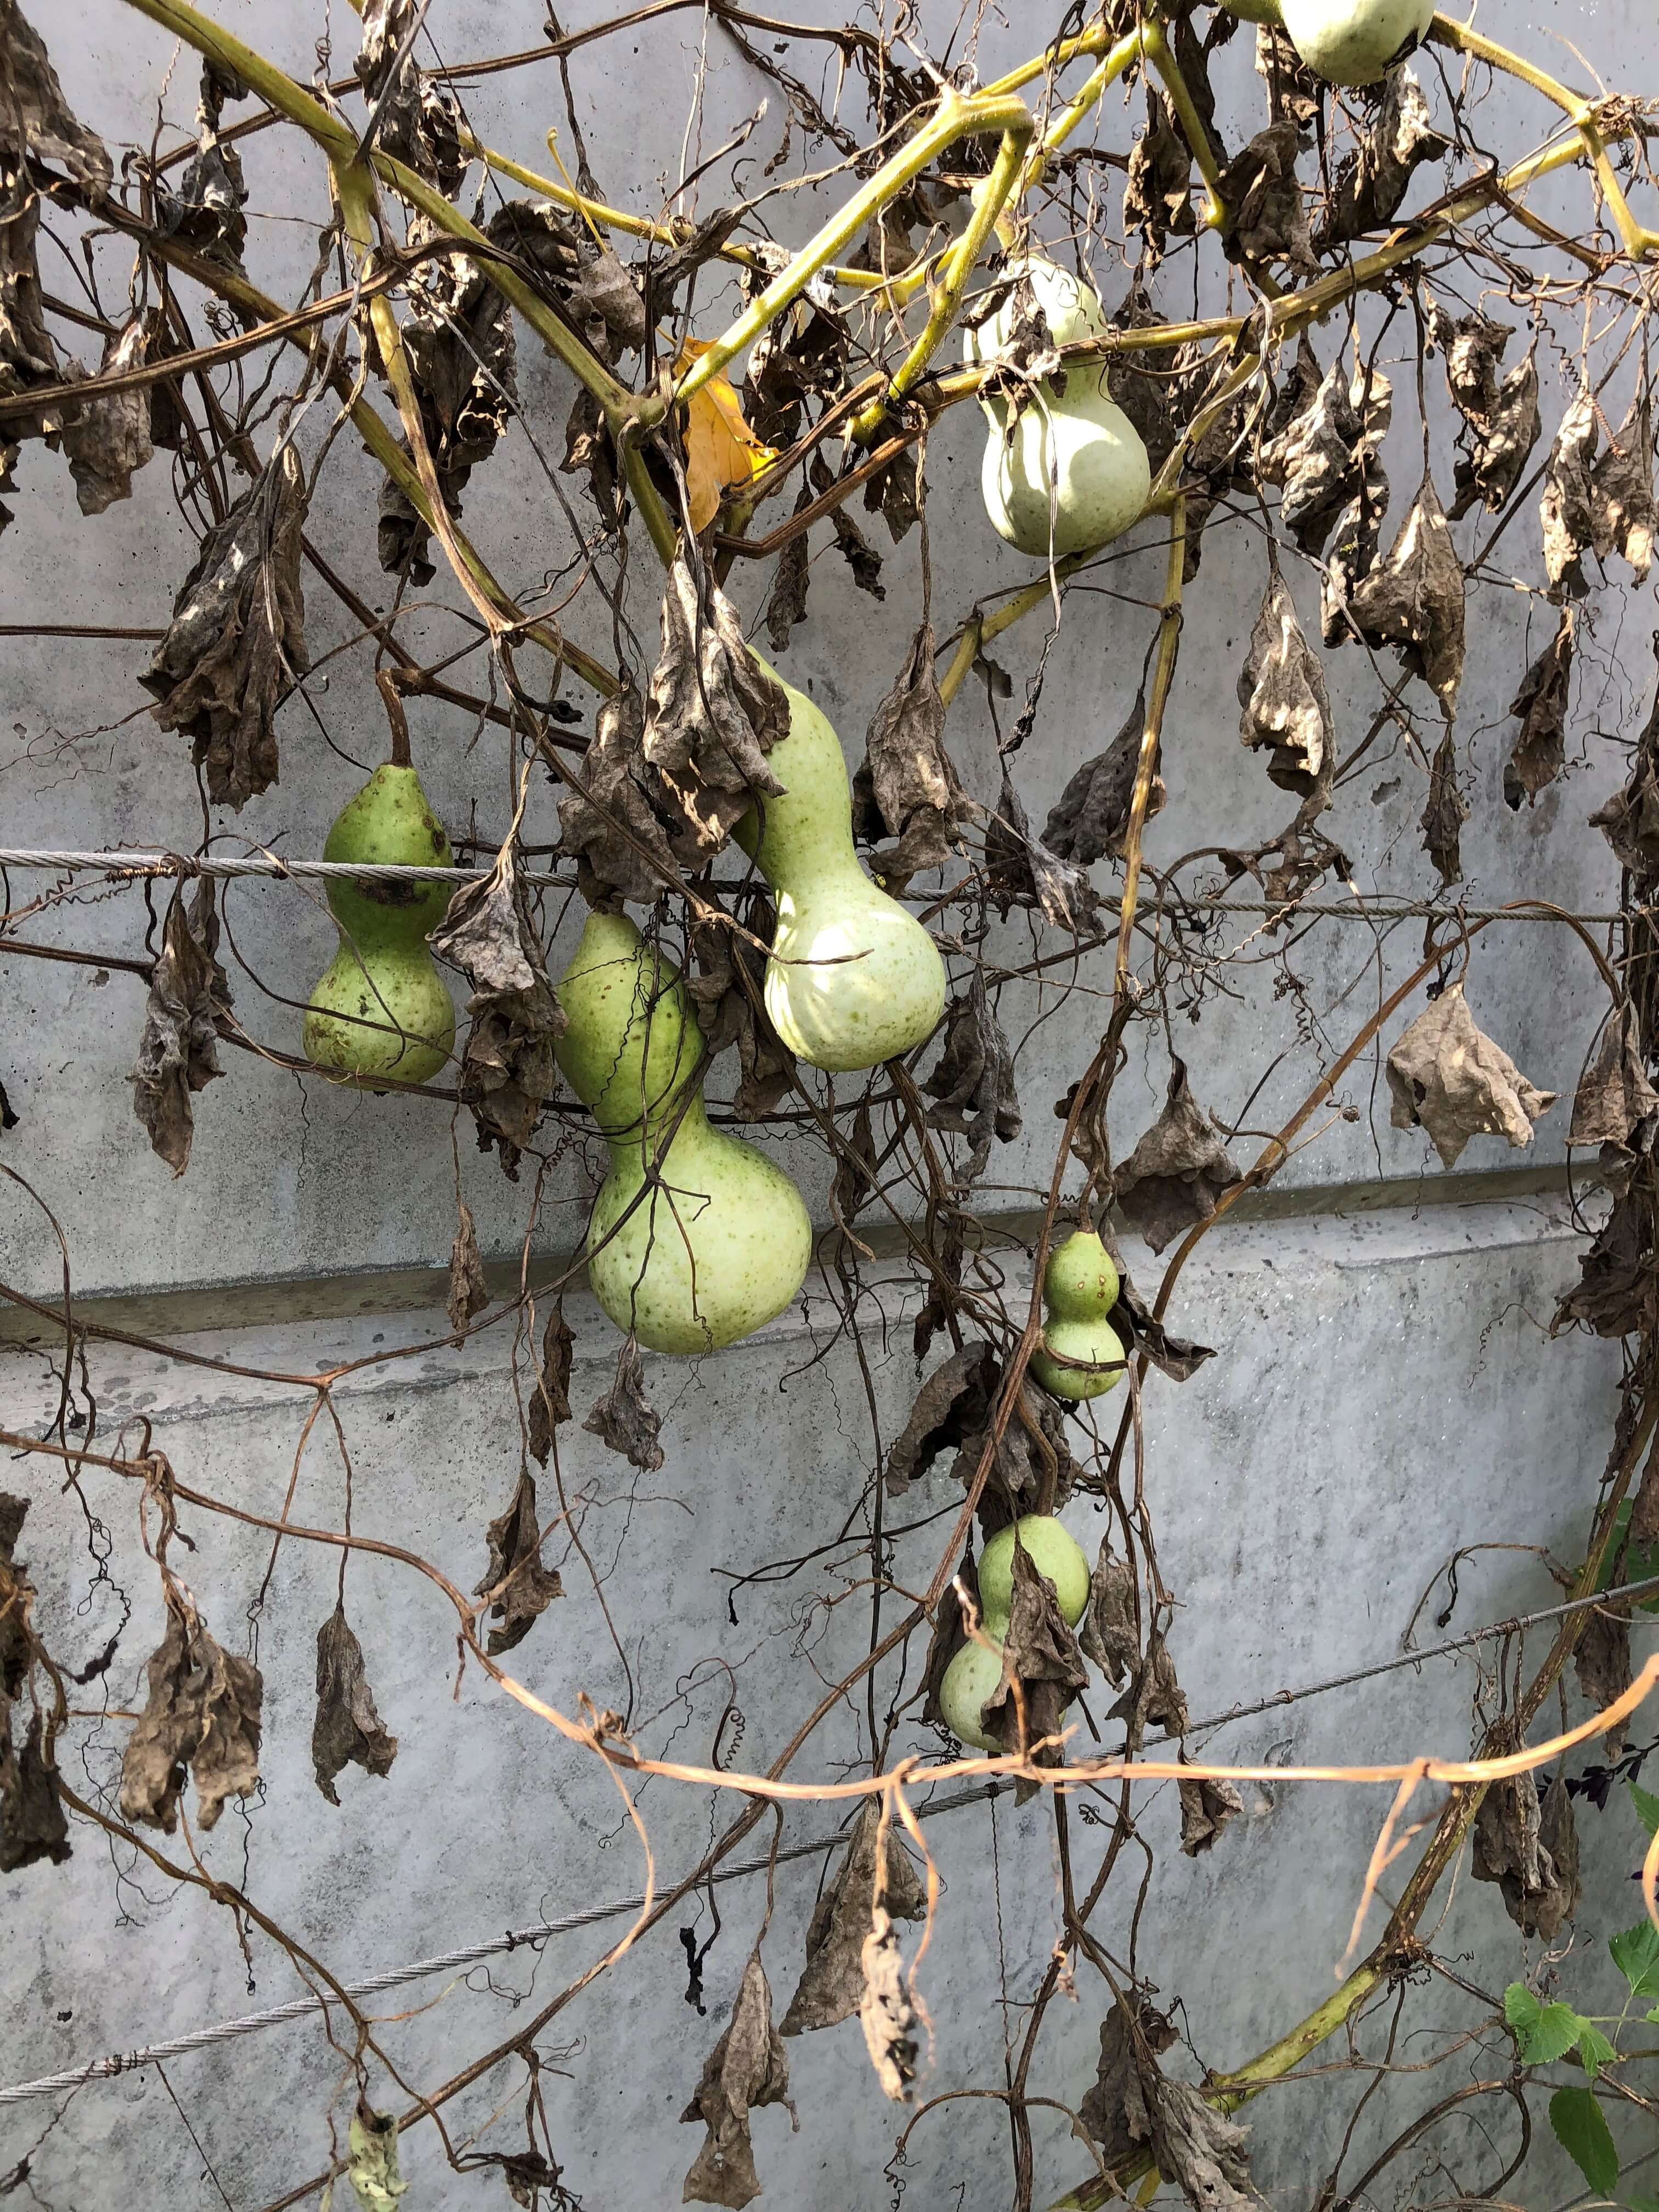 Gourds on the espalier wall. Photo by Leslie Hunter, Oct. 11, 2018.